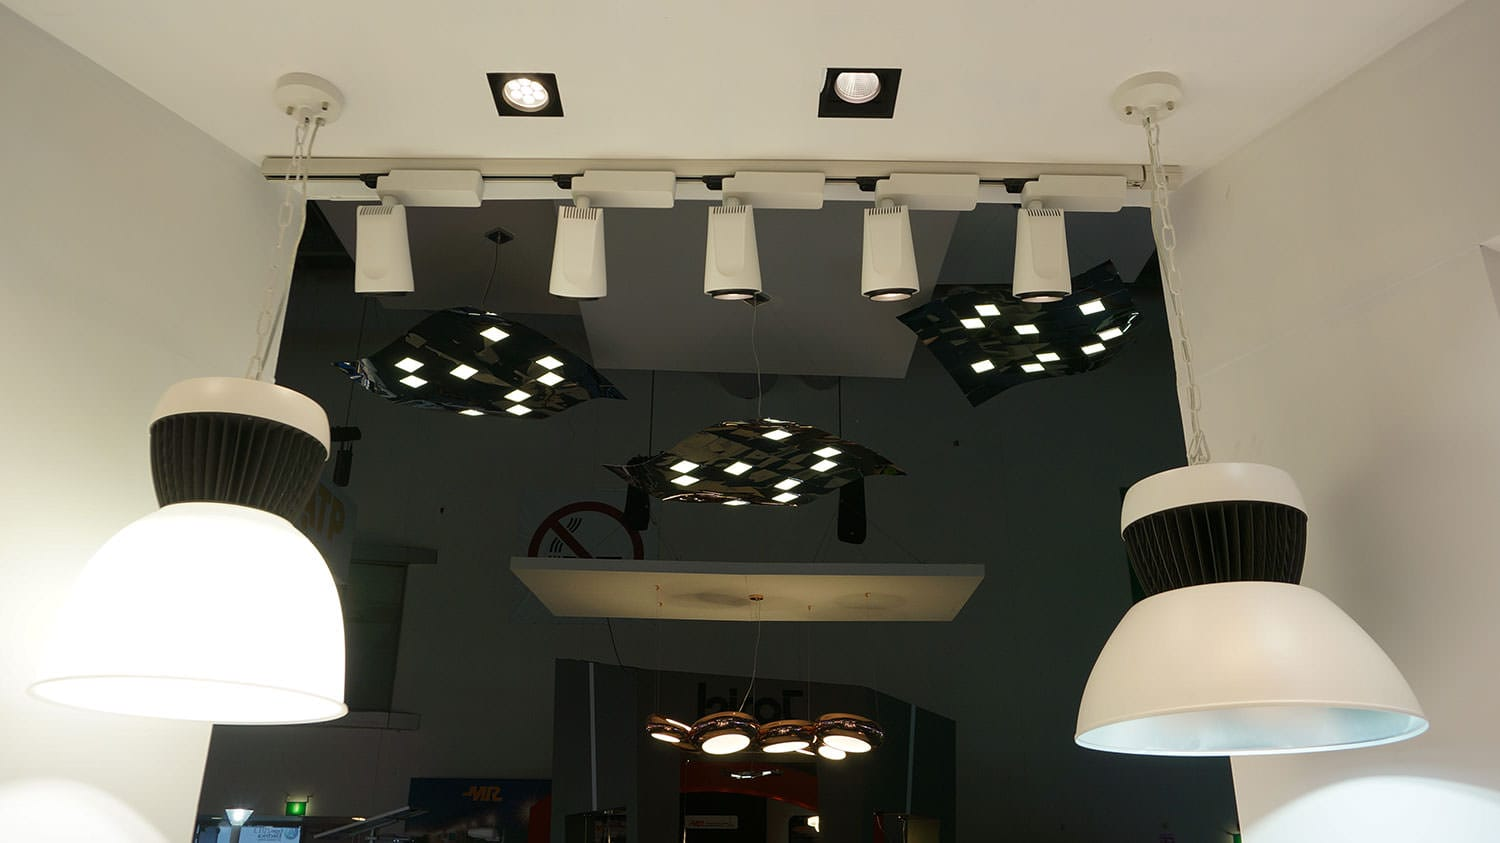 Three pendant OLED luminaires Pixelate hanging from a ceiling